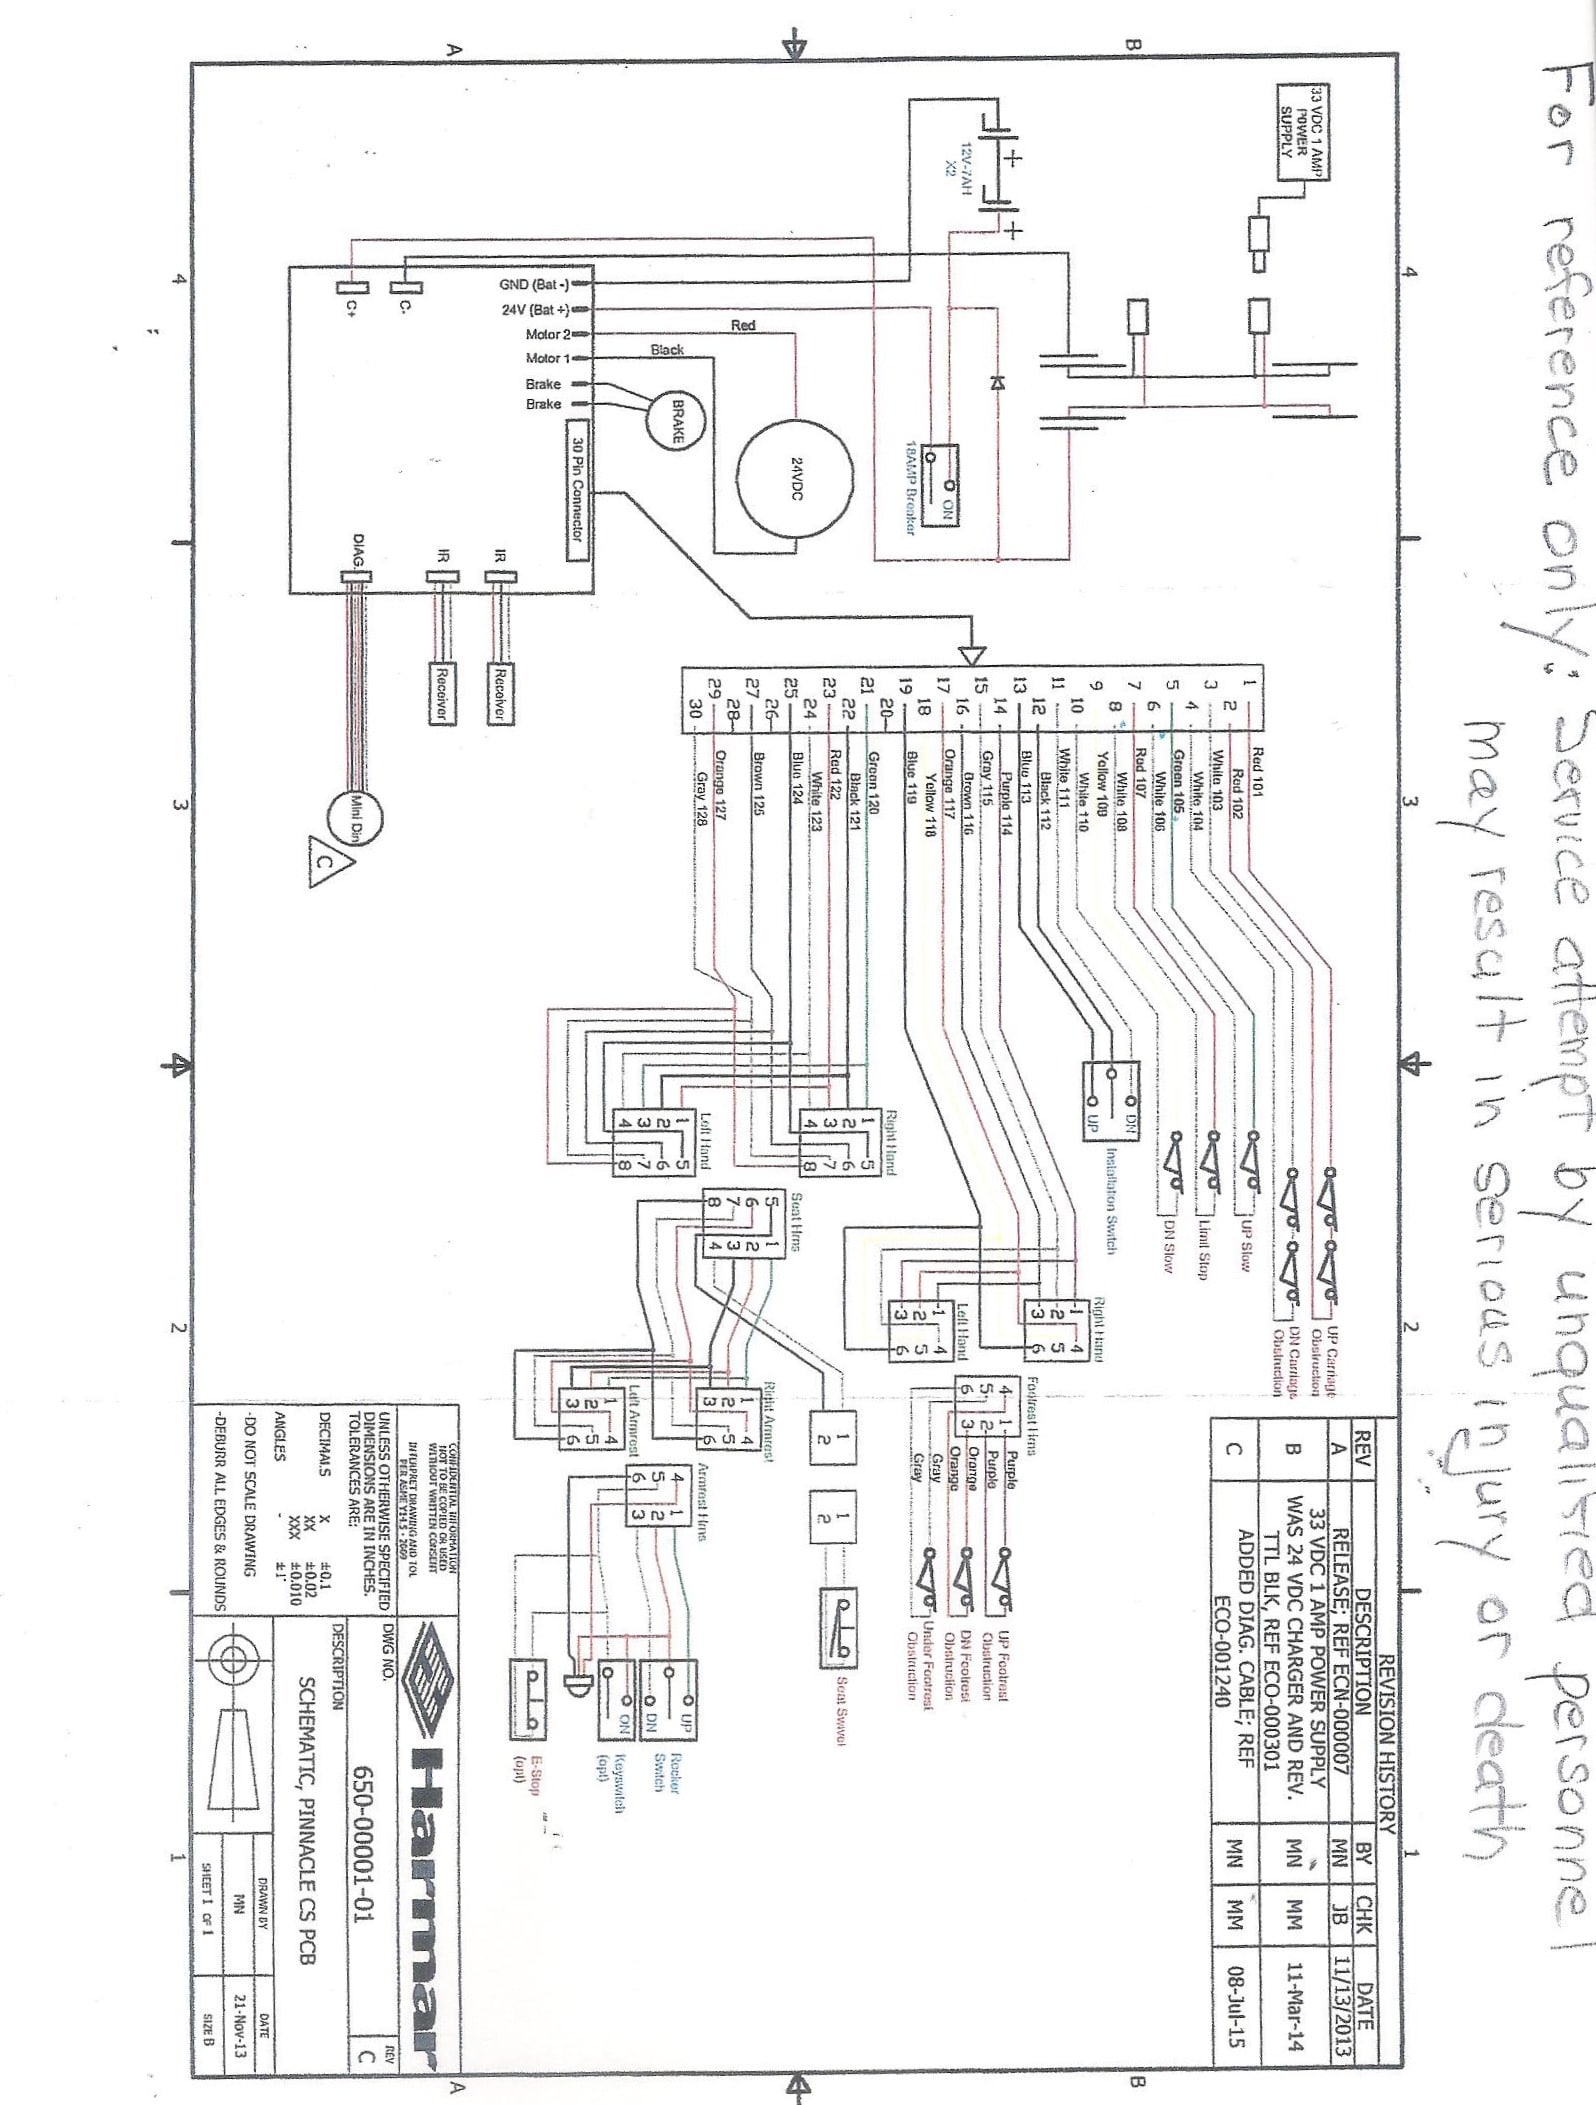 savaria v1504 wiring diagram   28 wiring diagram images